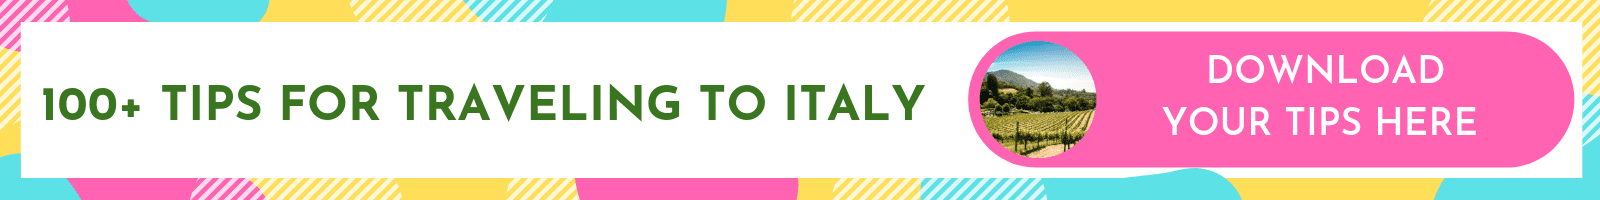 100+ Tips for Traveling to Italy